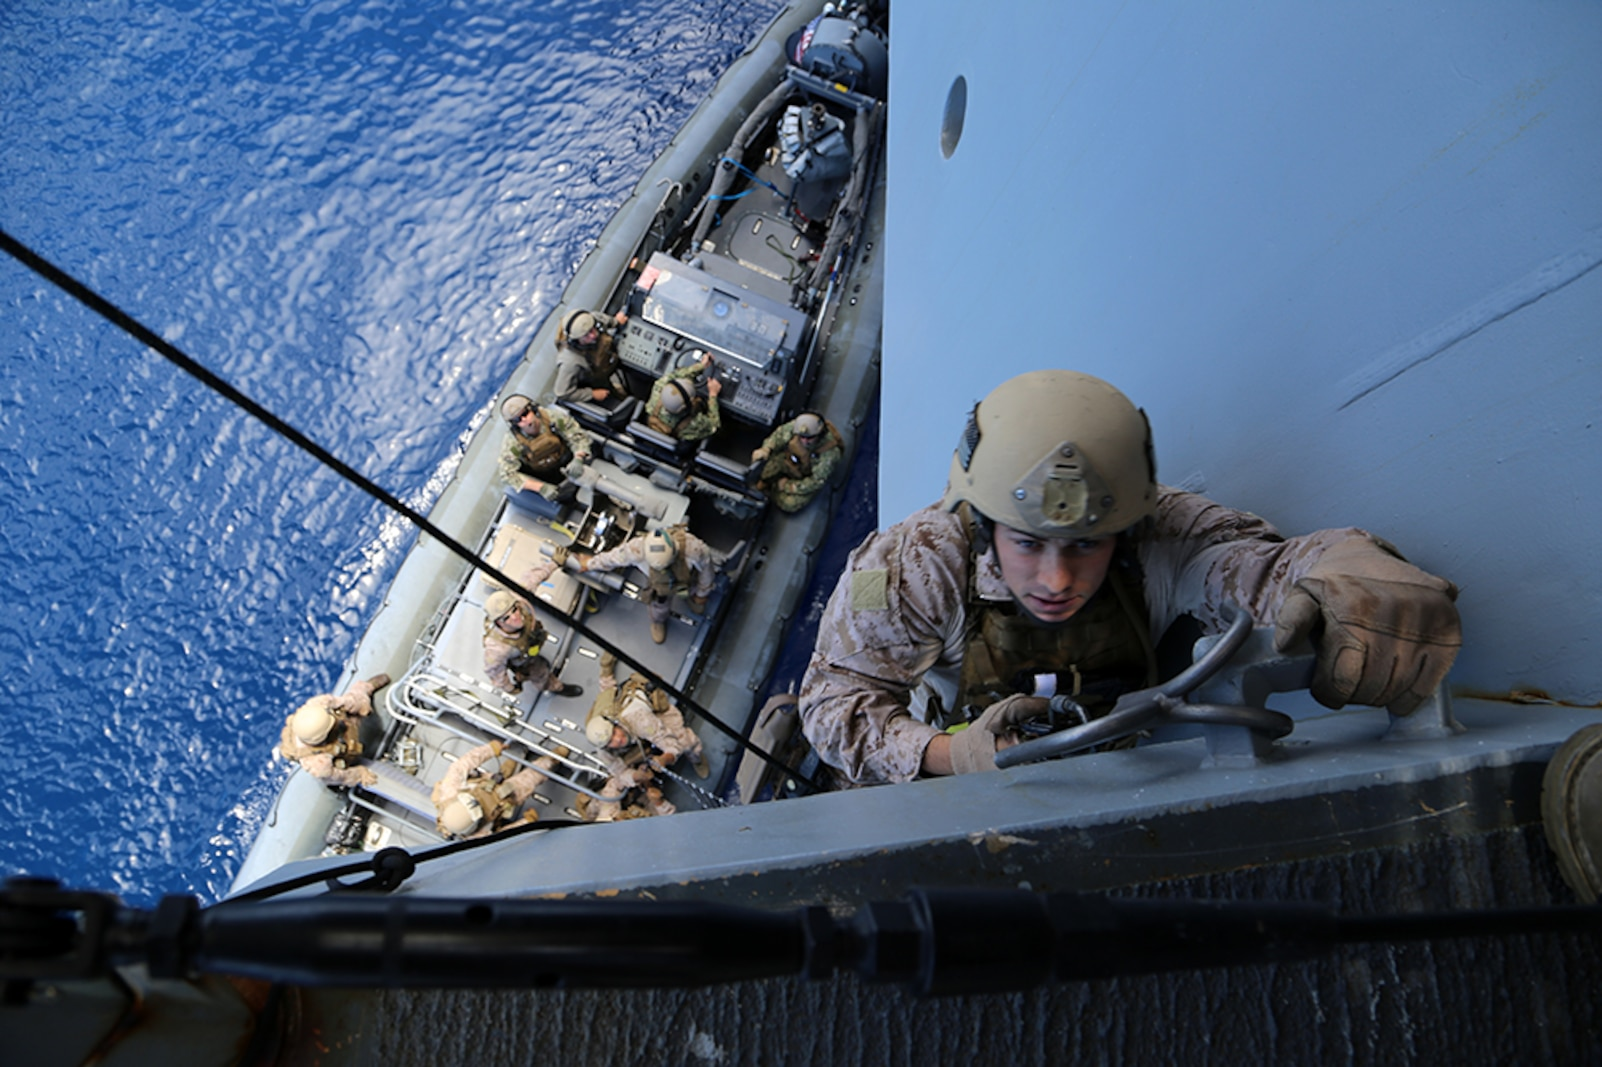 A Marine with the Force Reconnaissance Detachment, 11th Marine Expeditionary Unit, climbs up the USS San Diego on a caving ladder as part of an approach, hook and climb exercise conducted during Certification Exercise (CERTEX) off the coast of Southern California, June 13, 2014. The 11th MEU and Amphibious Squadron 5 team conduct CERTEX to hone mission-essential tasks, execute specified MEU and Amphibious Ready Group operations, and certify the foundation of a cohesive warfighting team for exercises and operations they may encounter in their upcoming deployment. (U.S. Marine Corps photo by Gunnery Sgt. Rome M. Lazarus/Released)